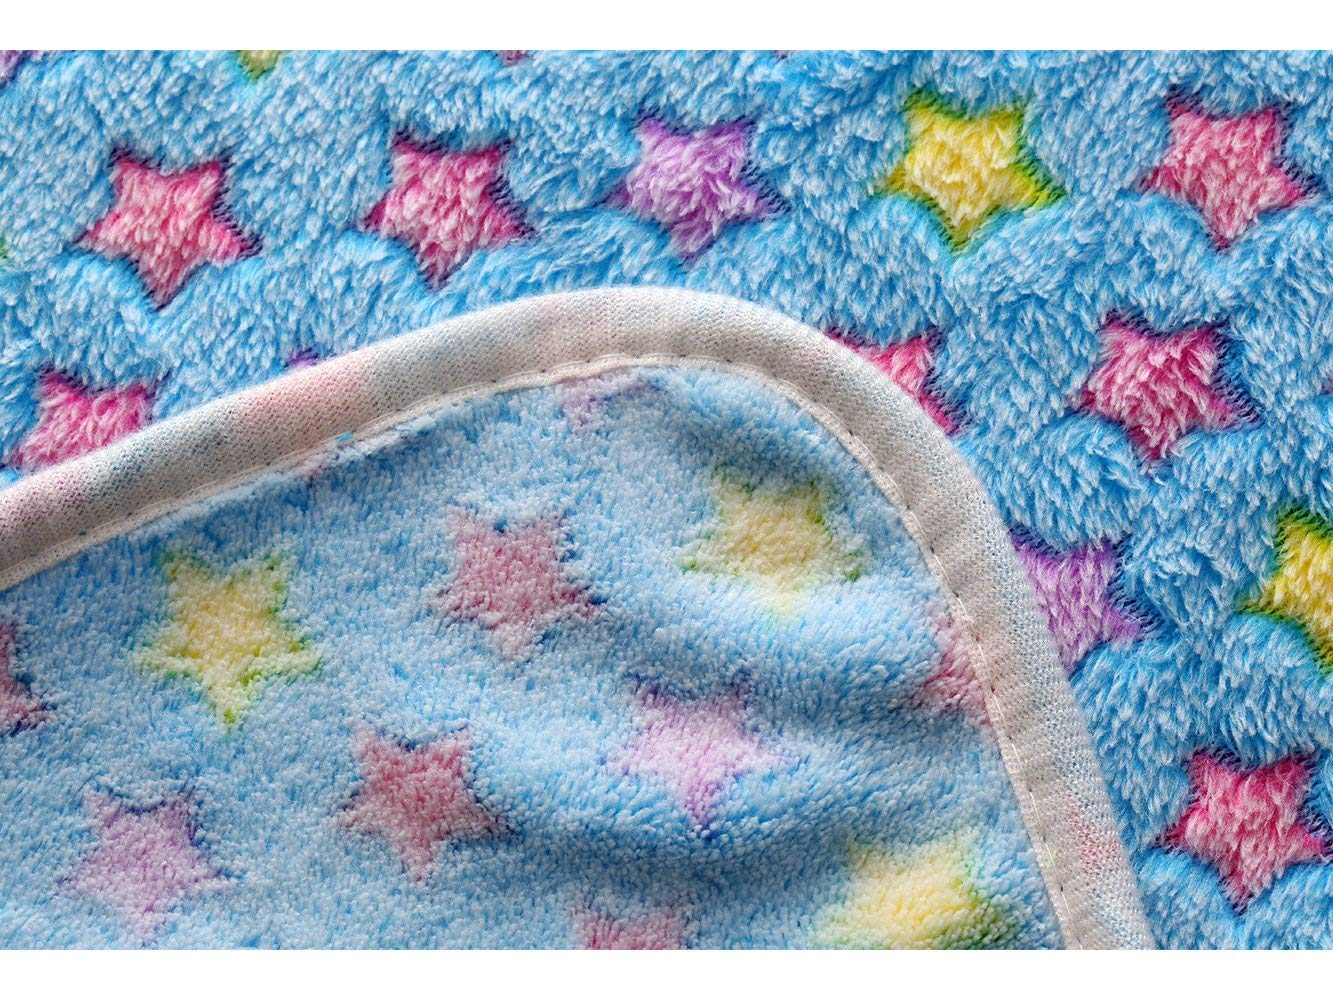 luciphia 1 Pack 3 Blankets Super Soft Fluffy Premium Fleece Pet Blanket Flannel Throw for Dog Puppy Cat Star Small by luciphia (Image #8)